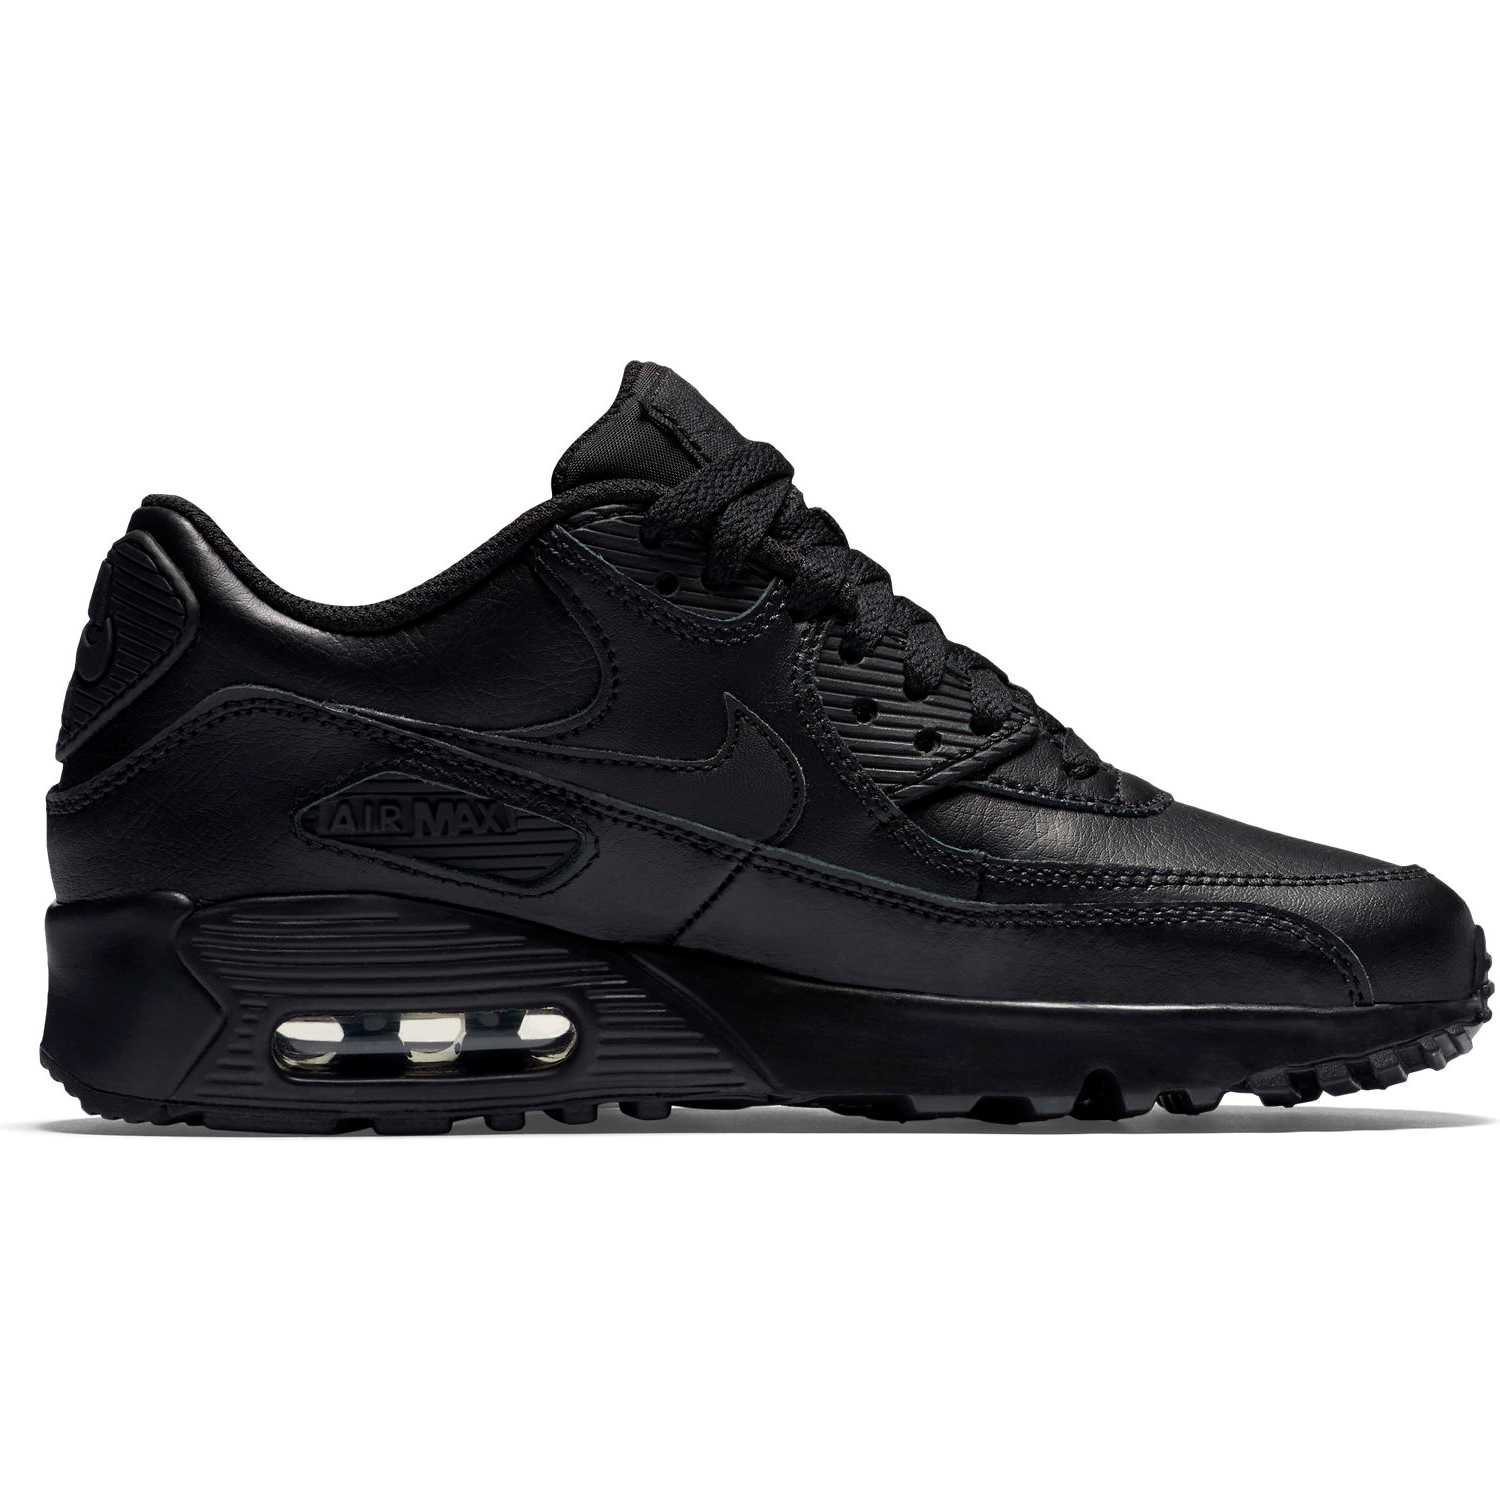 BUTY JUNIOR LIFESTYLE NIKE AIR MAX 90 LEATHER CZARNE 833412 001